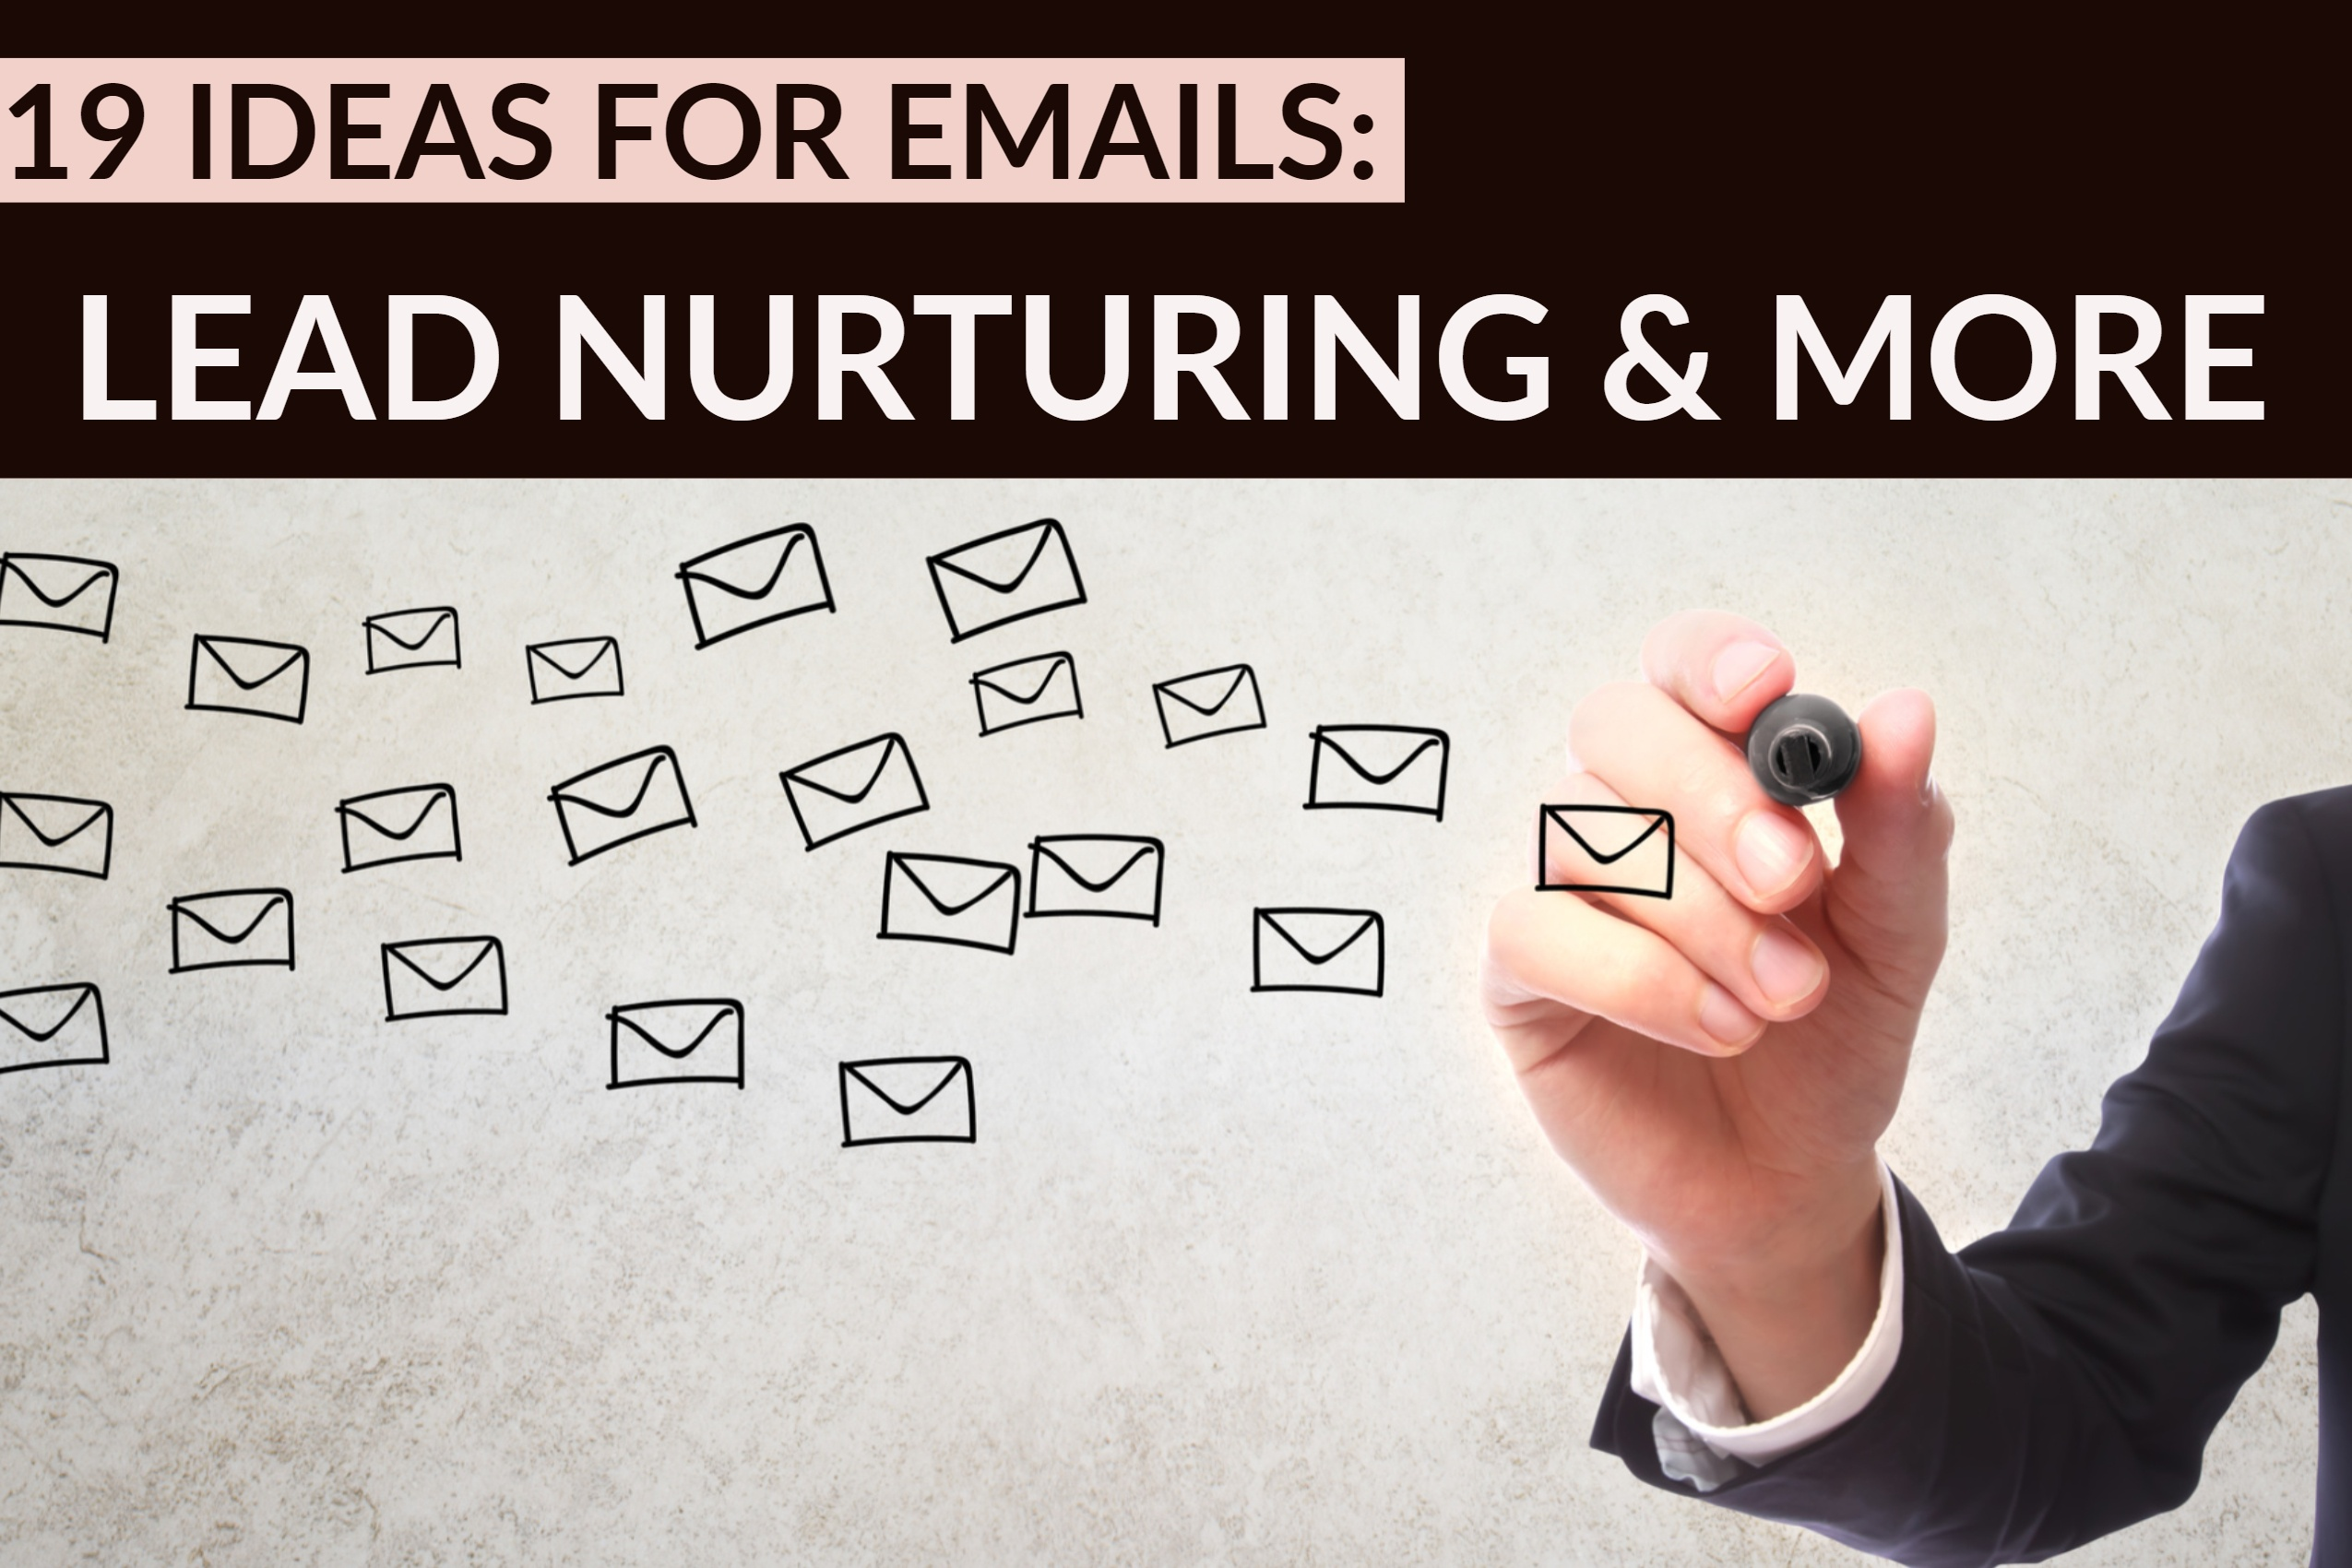 19 Ideas For Emails_ Lead Nurturing & More